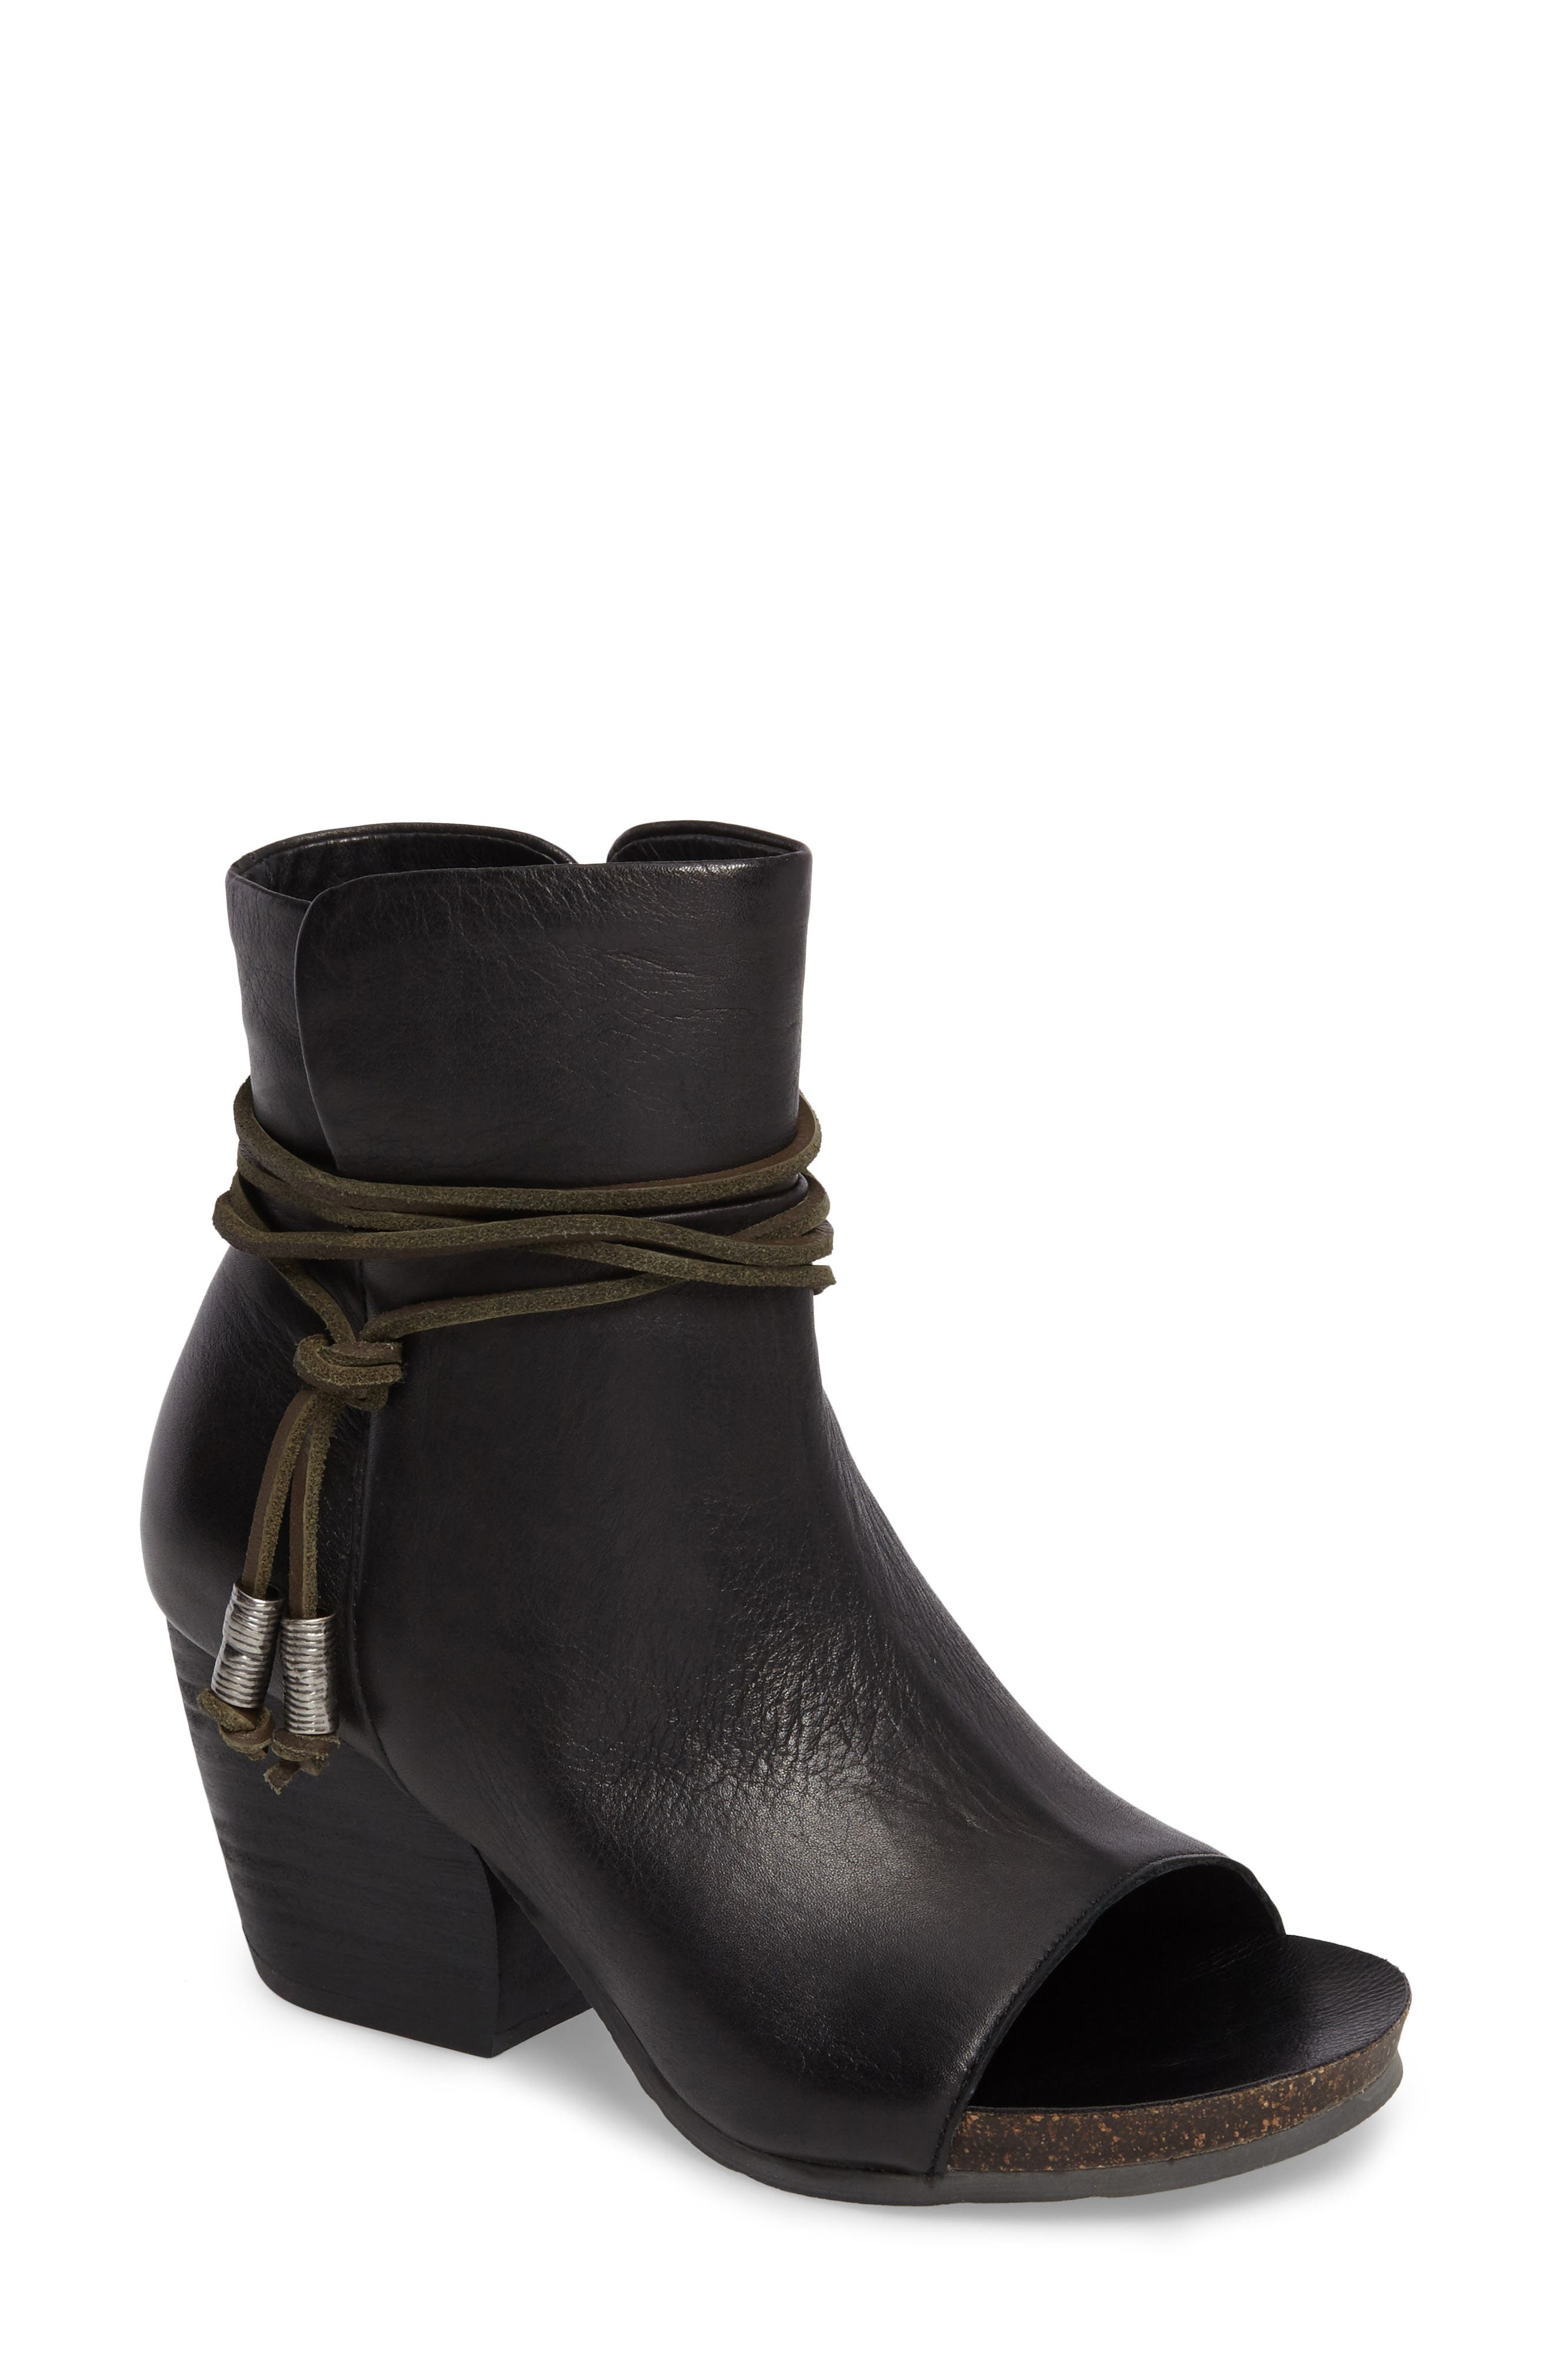 Alternate Image 1 Selected - OTBT Vagabond Open Toe Bootie (Women)